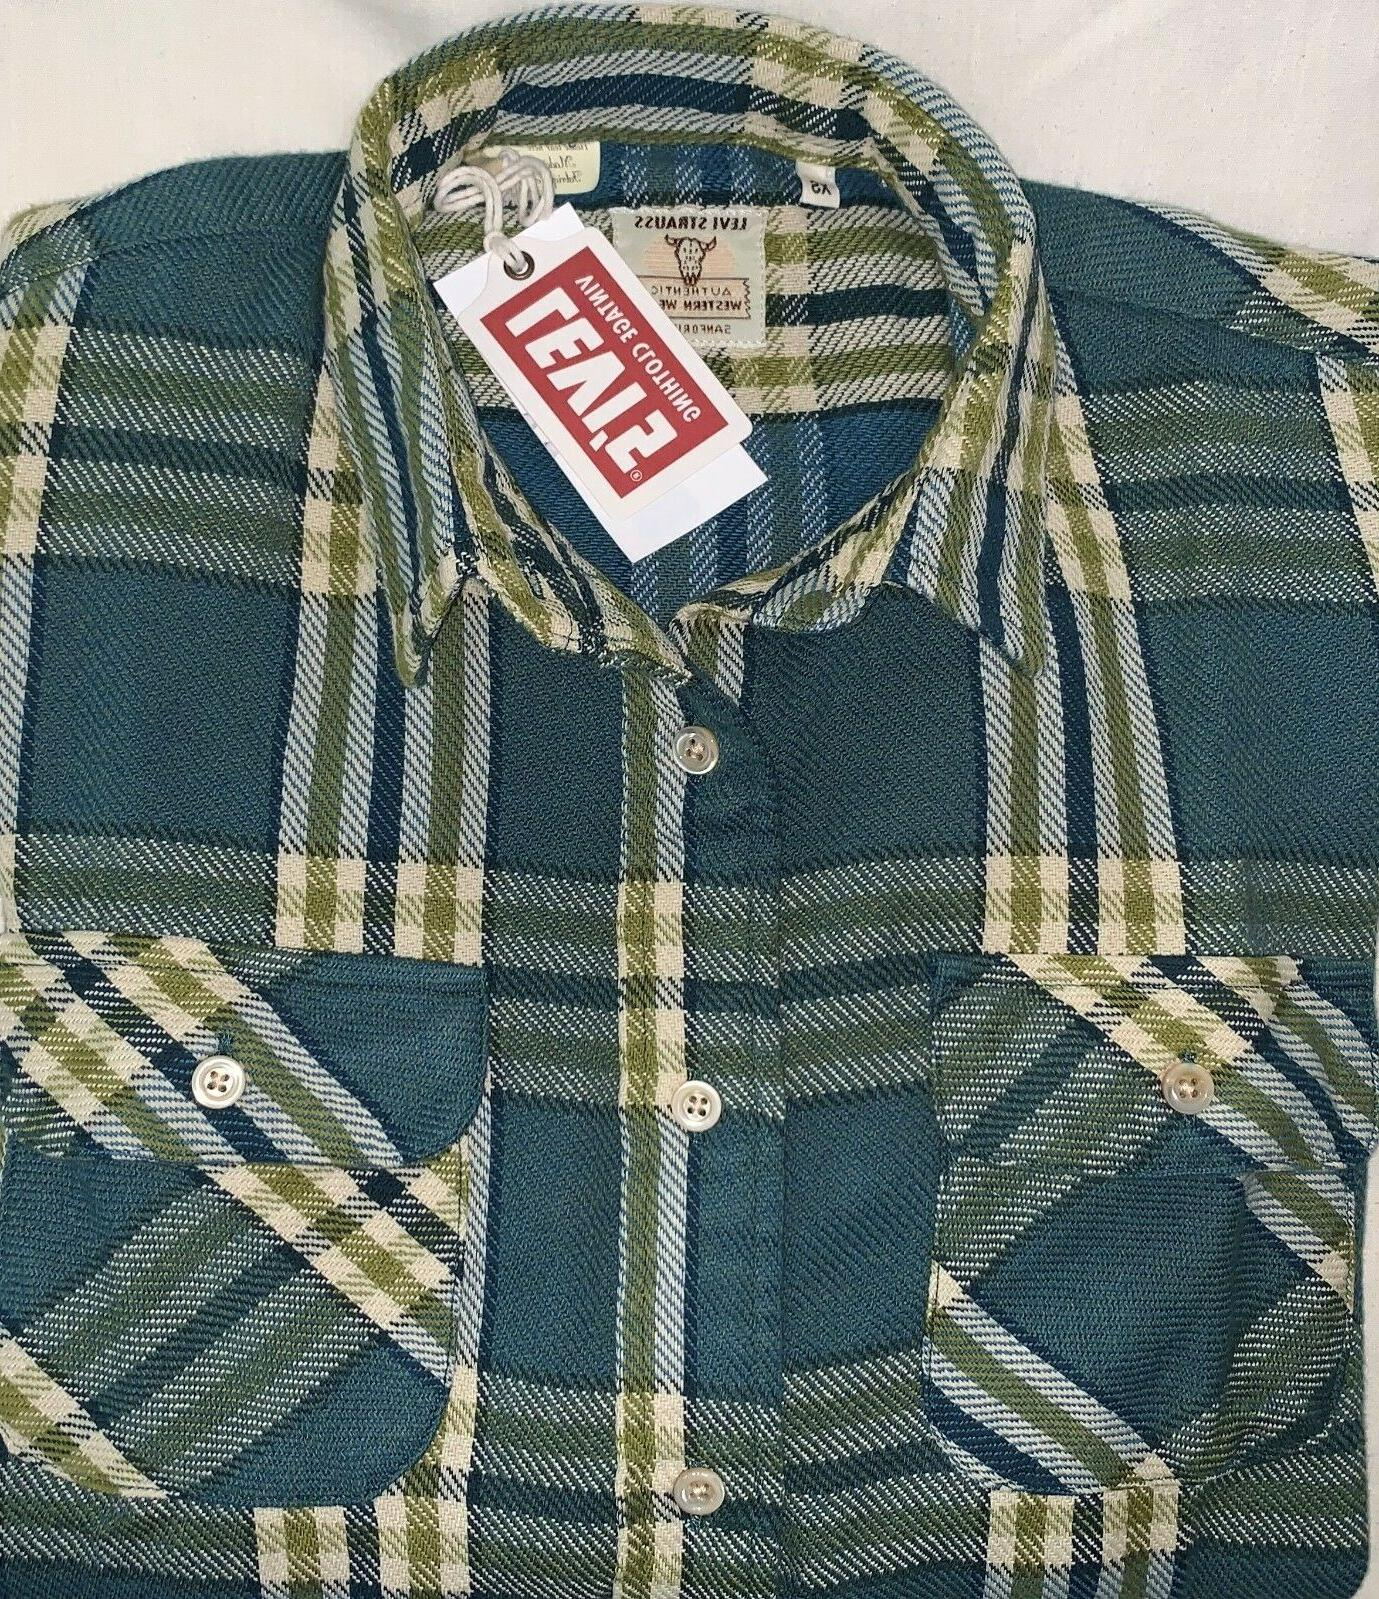 New Levis Clothing Western Wear Flannel